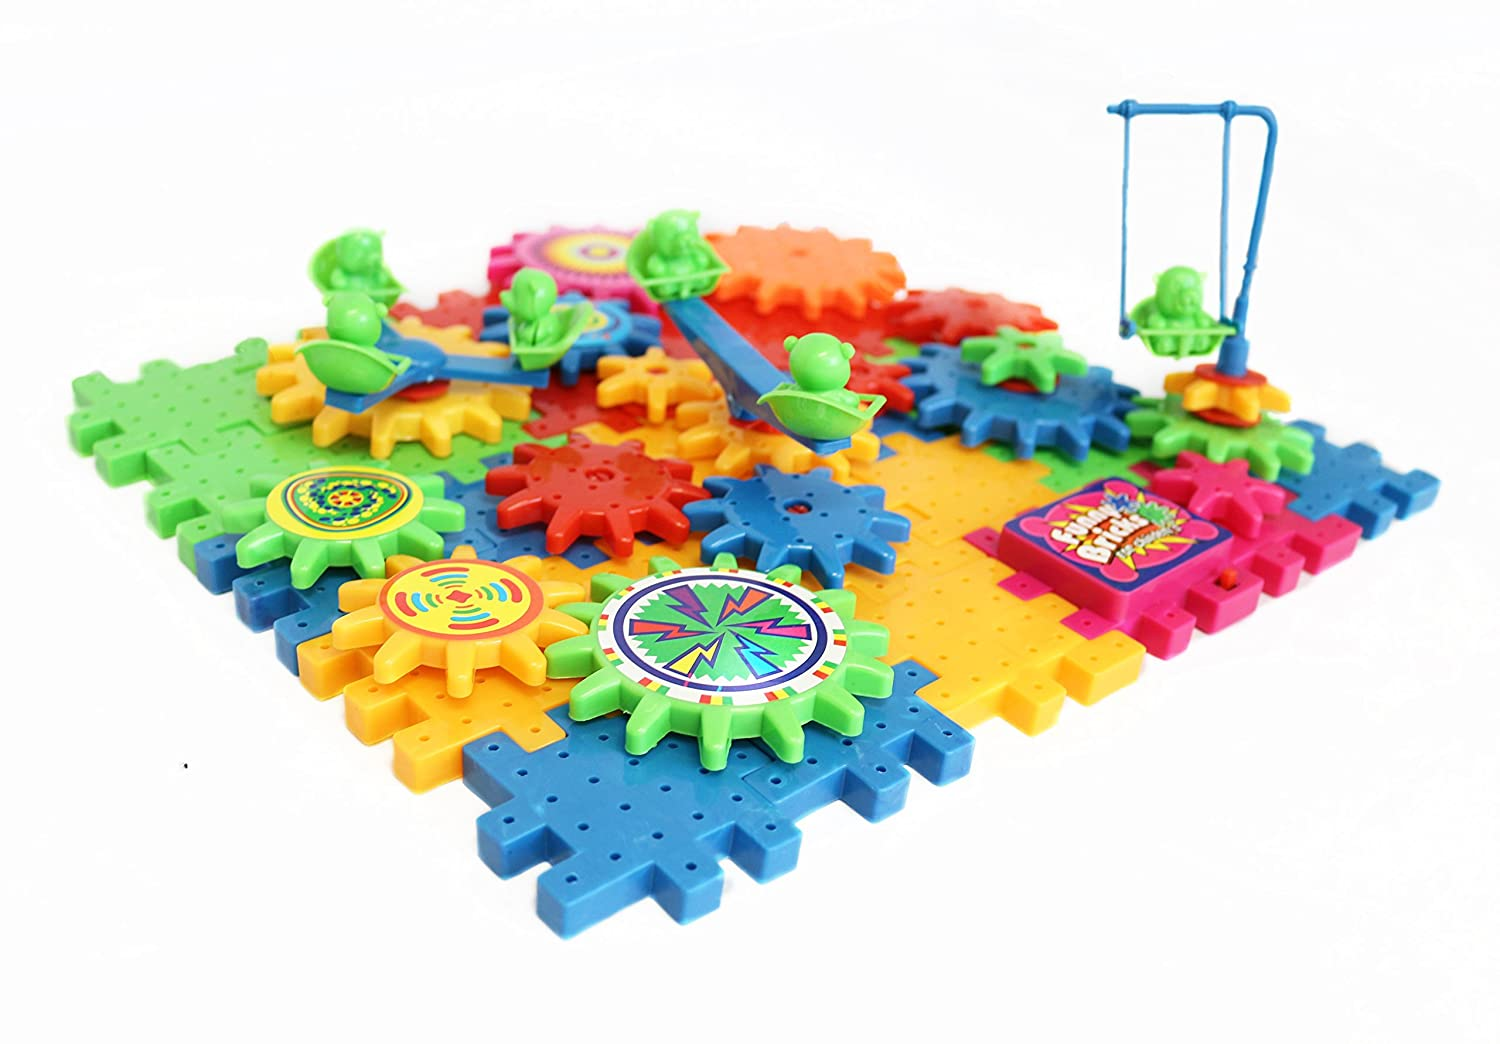 Educational Toy Gear Set - Fine Motor Skills Toys - Educational Toys for Preschool - Best Plastic Building Gears - Early Education Fine Motor Skill Development Review